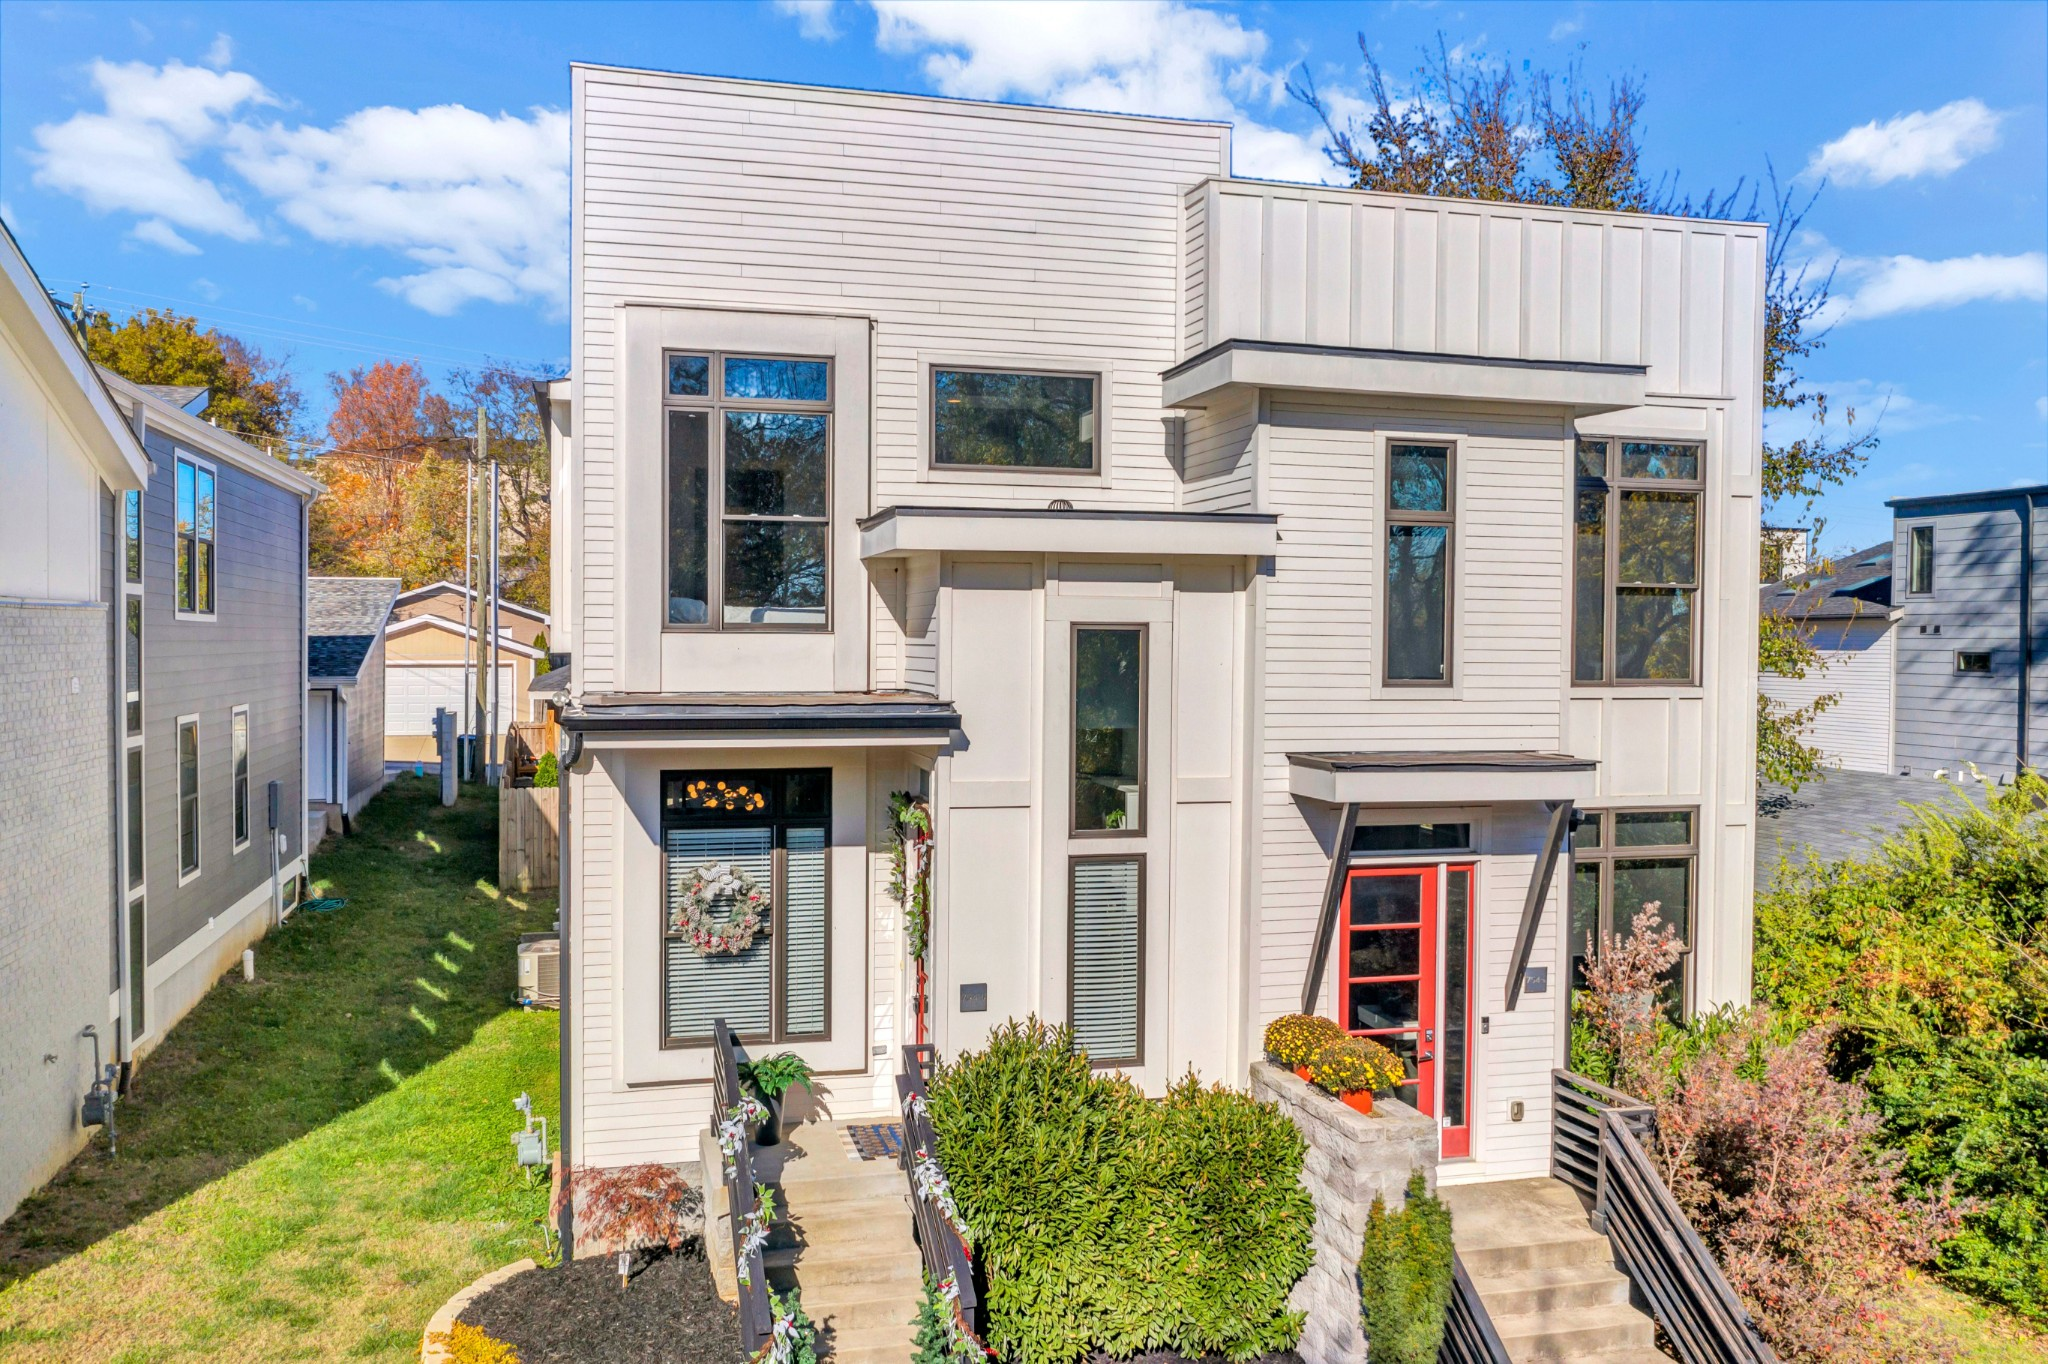 754B Alloway St, Nashville - Midtown in Davidson County County, TN 37203 Home for Sale